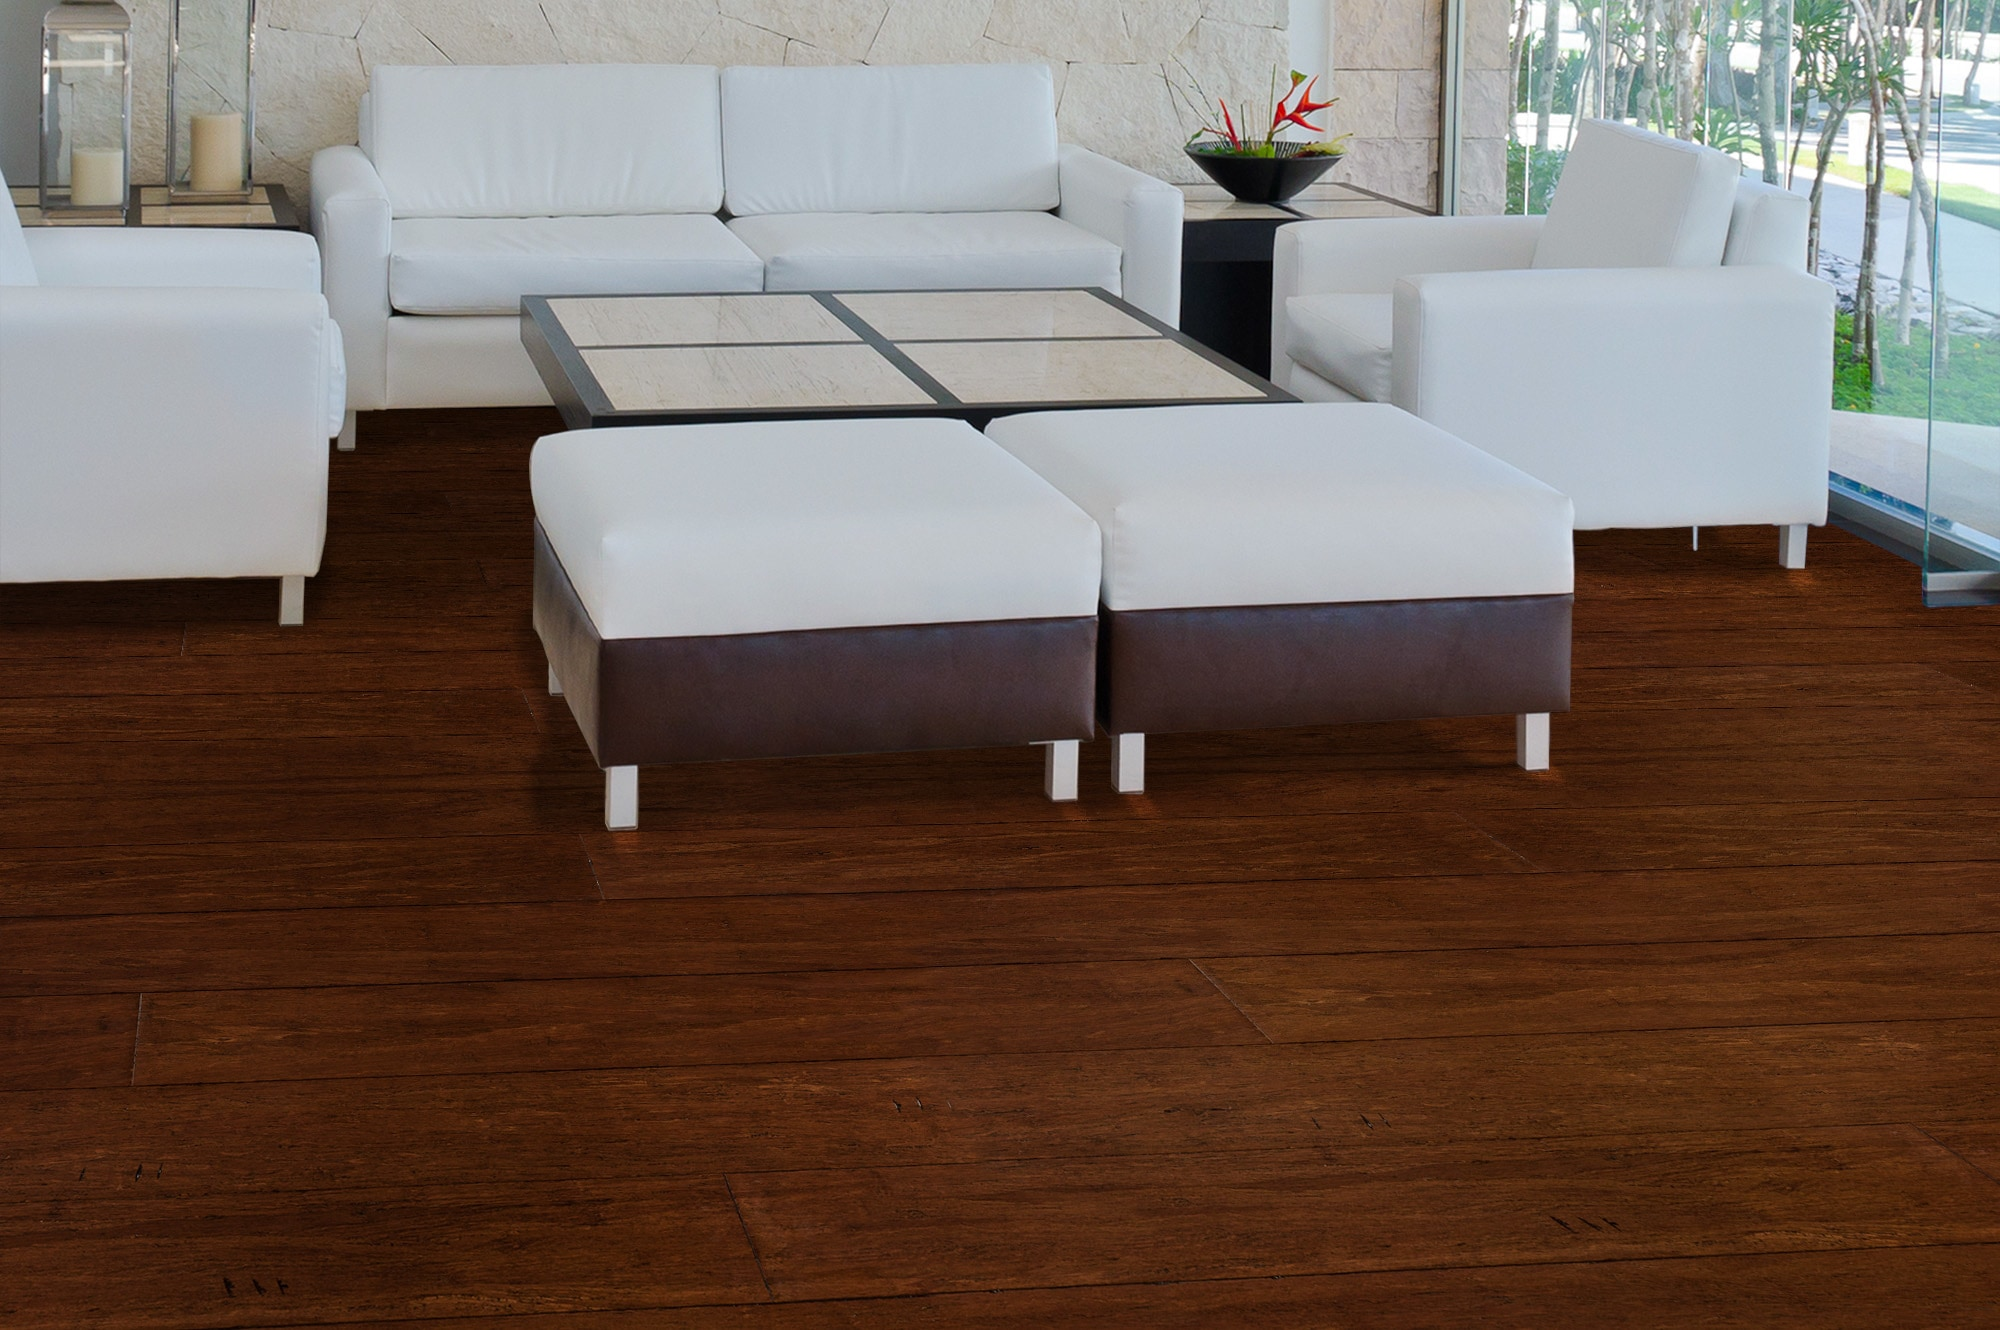 Click Hardwood Flooring 190mm brushed oiled engineered coffee oak click wood flooring 289m 2 Free Samples Yanchi Bamboo Click Lock Barn Plank Strand Woven Collection Distressed Bristle Brown